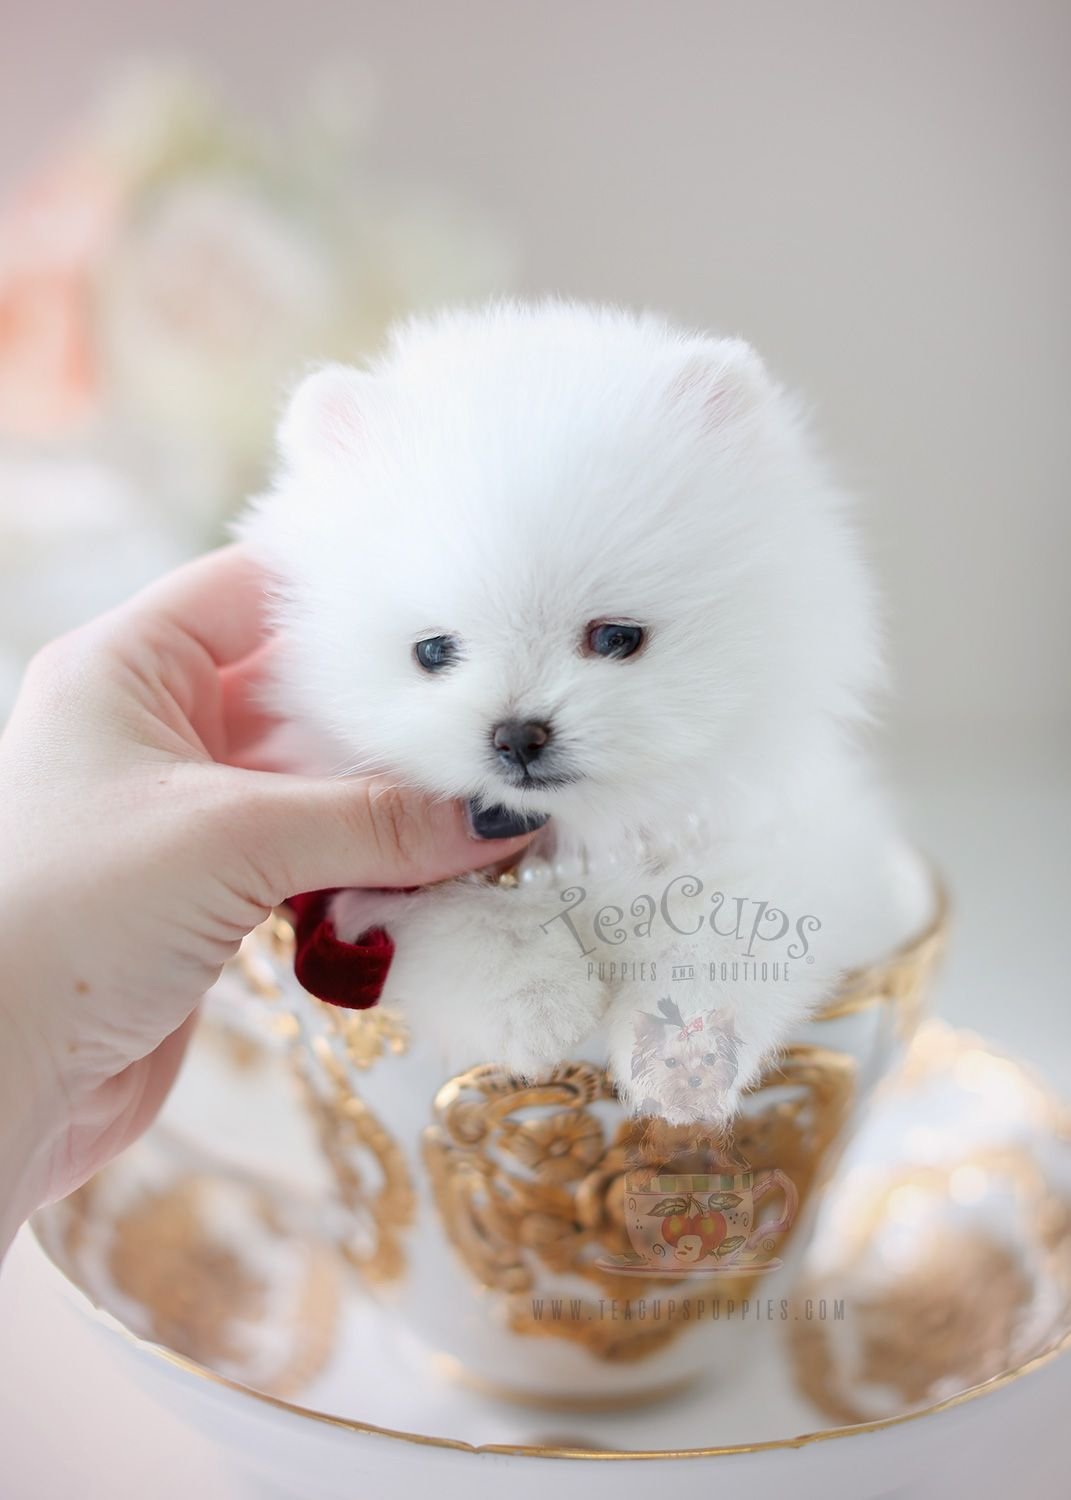 White Teacup Puppy : white, teacup, puppy, White, Teacup, Sized, Pomeranian, Puppy, Puppies, Boutique!, Home-raised, Locally, Puppy,, Puppies,